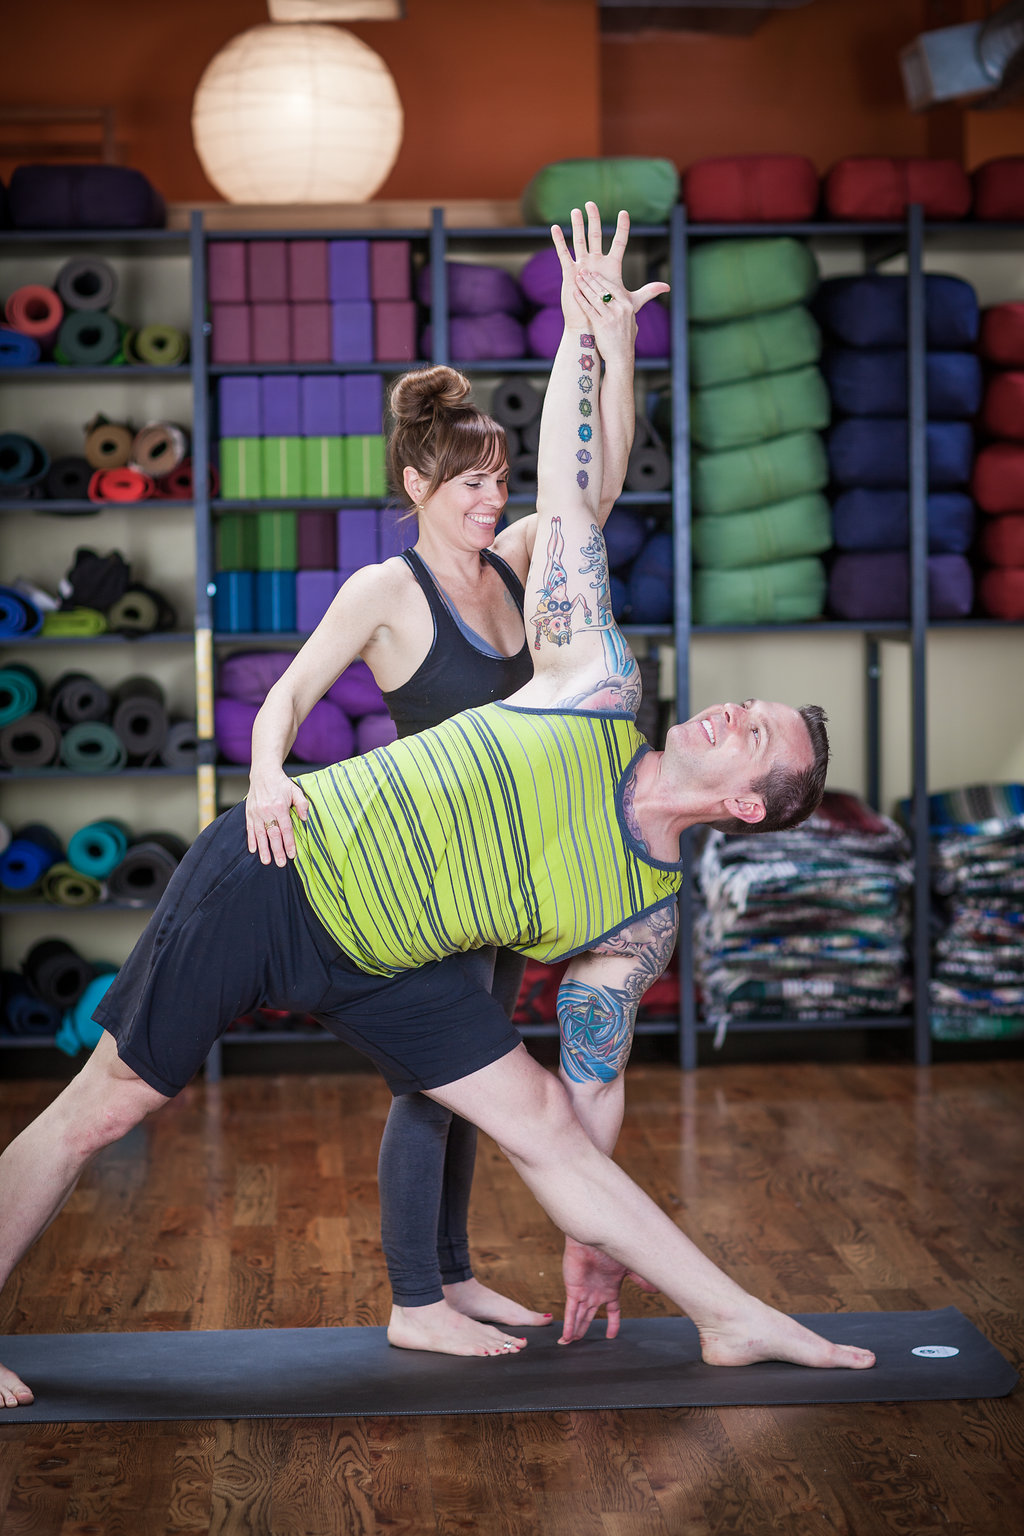 Yoga Teacher Assisting Student in Adho Mukkha Vrksasana (Hand STand) Pose